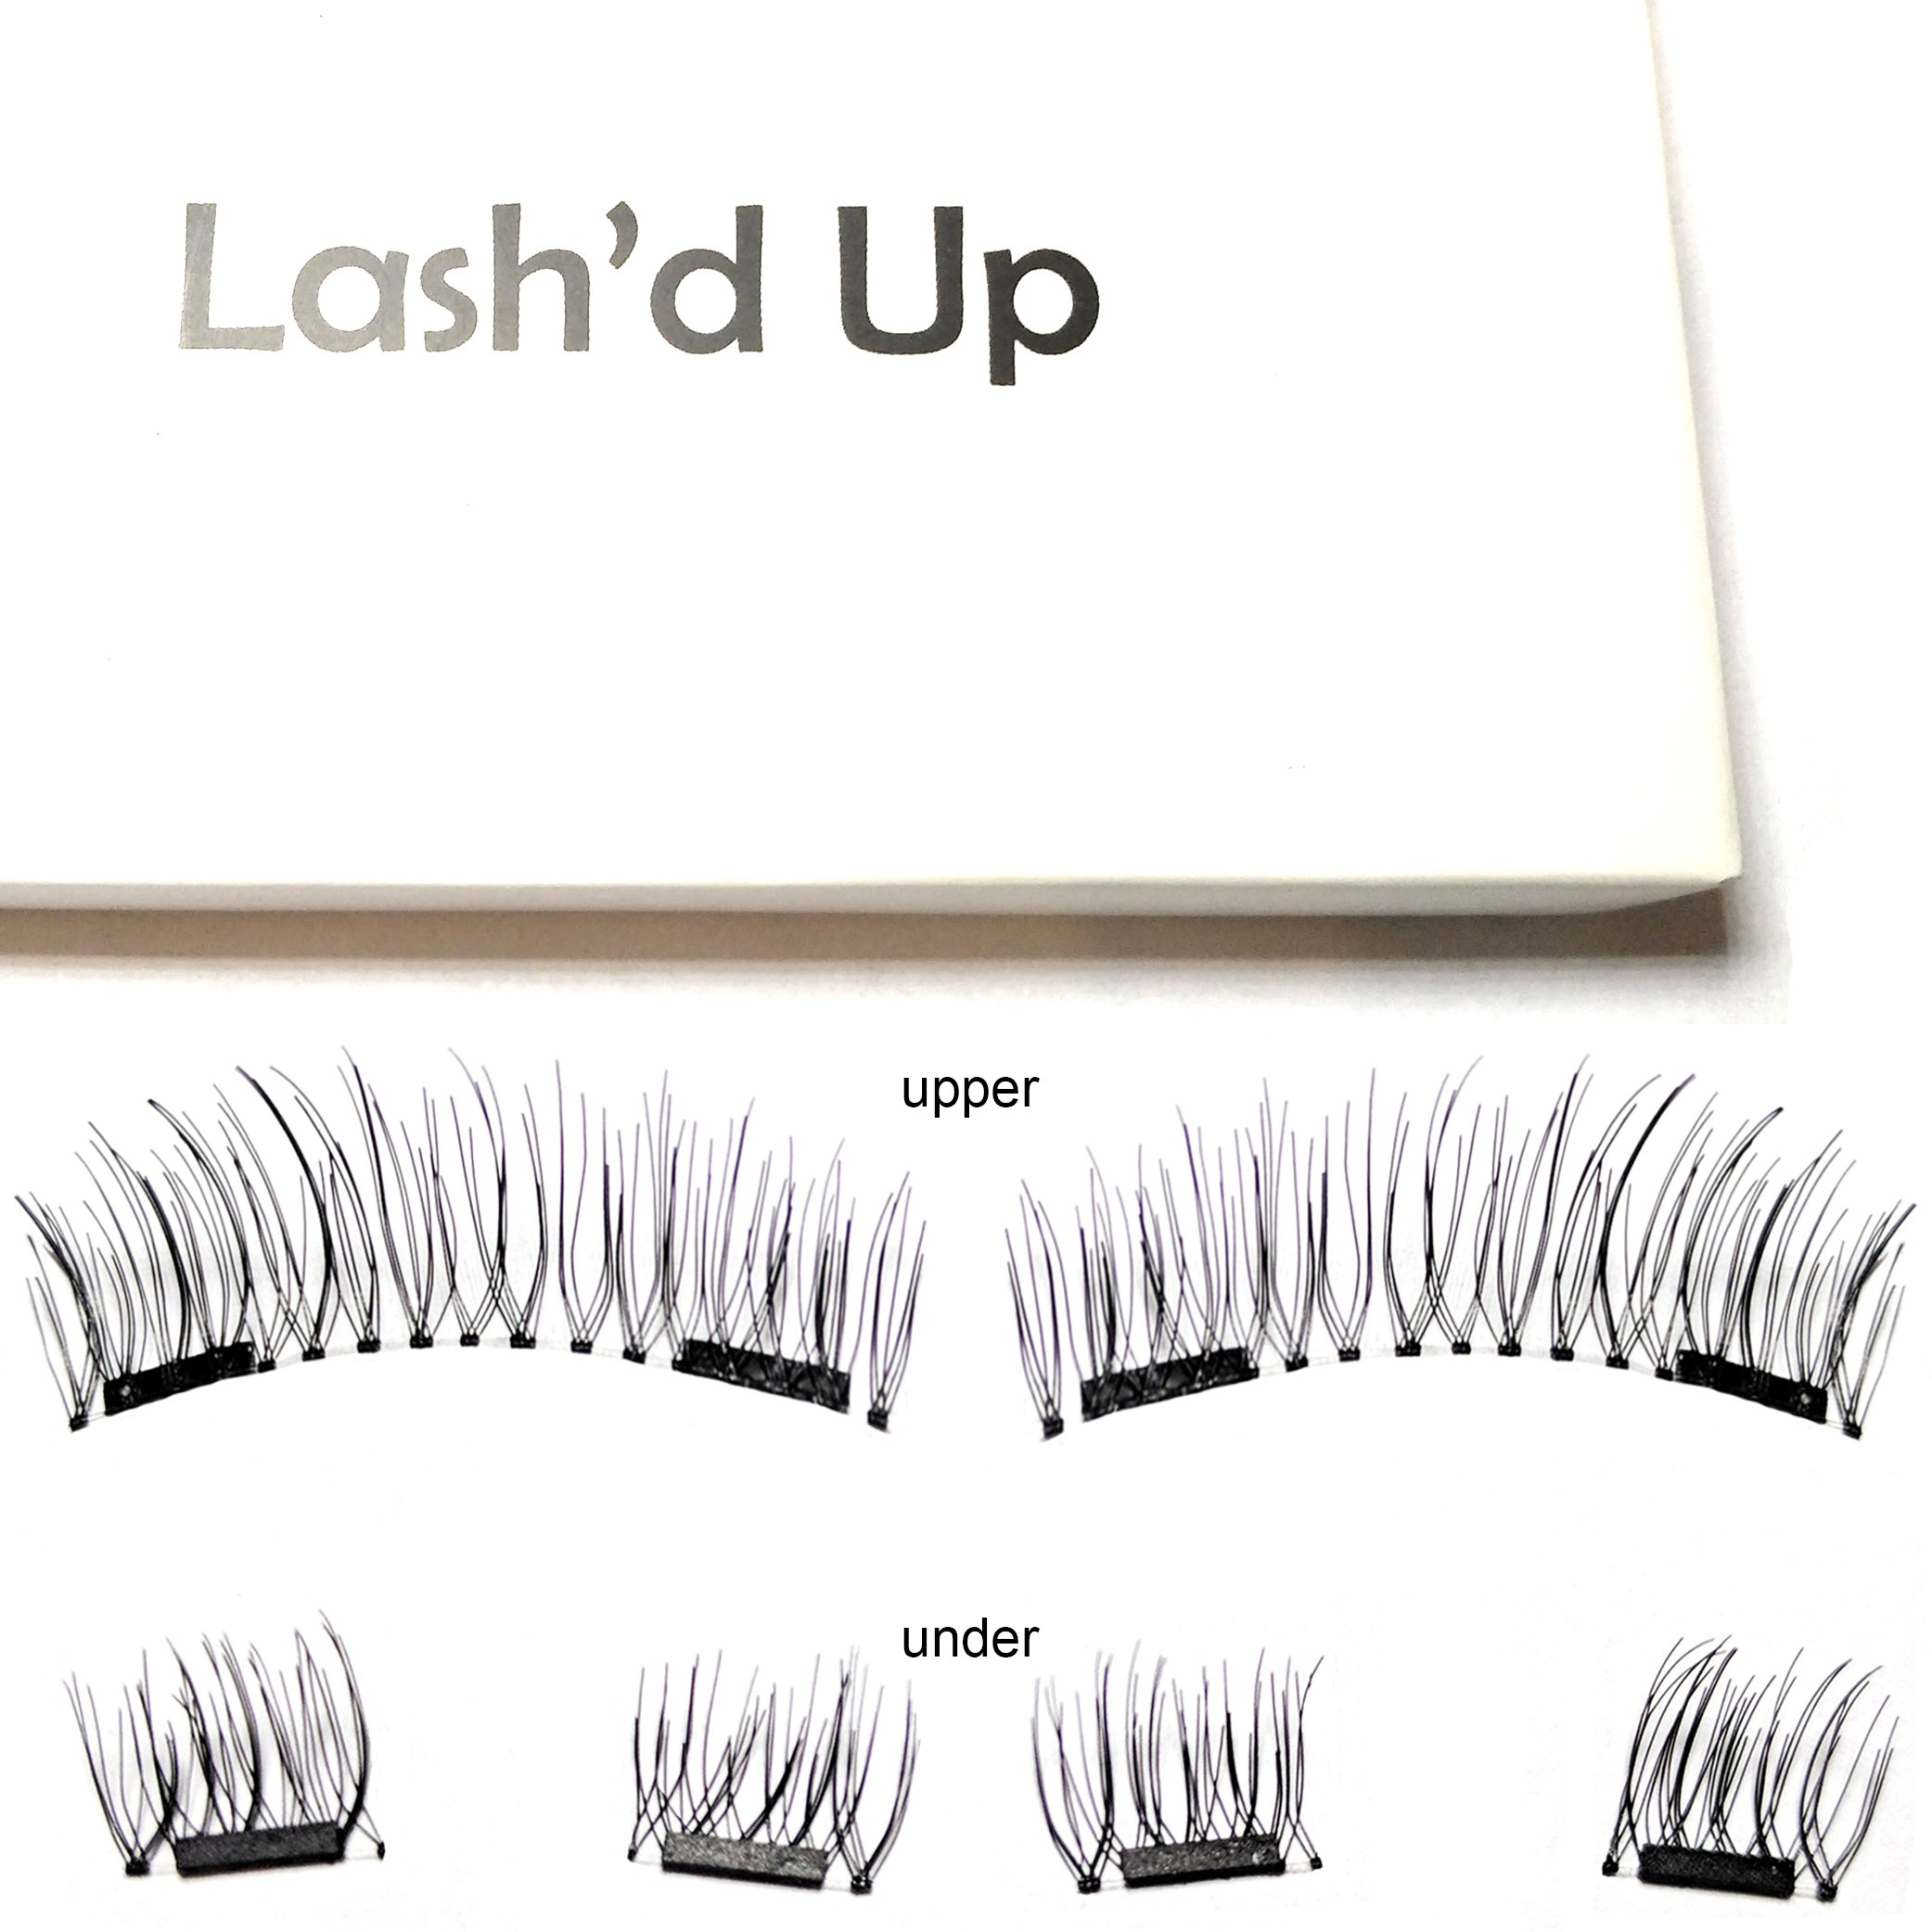 Lash'd Up Magnetic Eyelashes Full Eyes Natural Look Grade A+ Silk [No Glue] Child Cancer Partner Better Than 3 Magnets Reusable False Lashes | i woke up this way